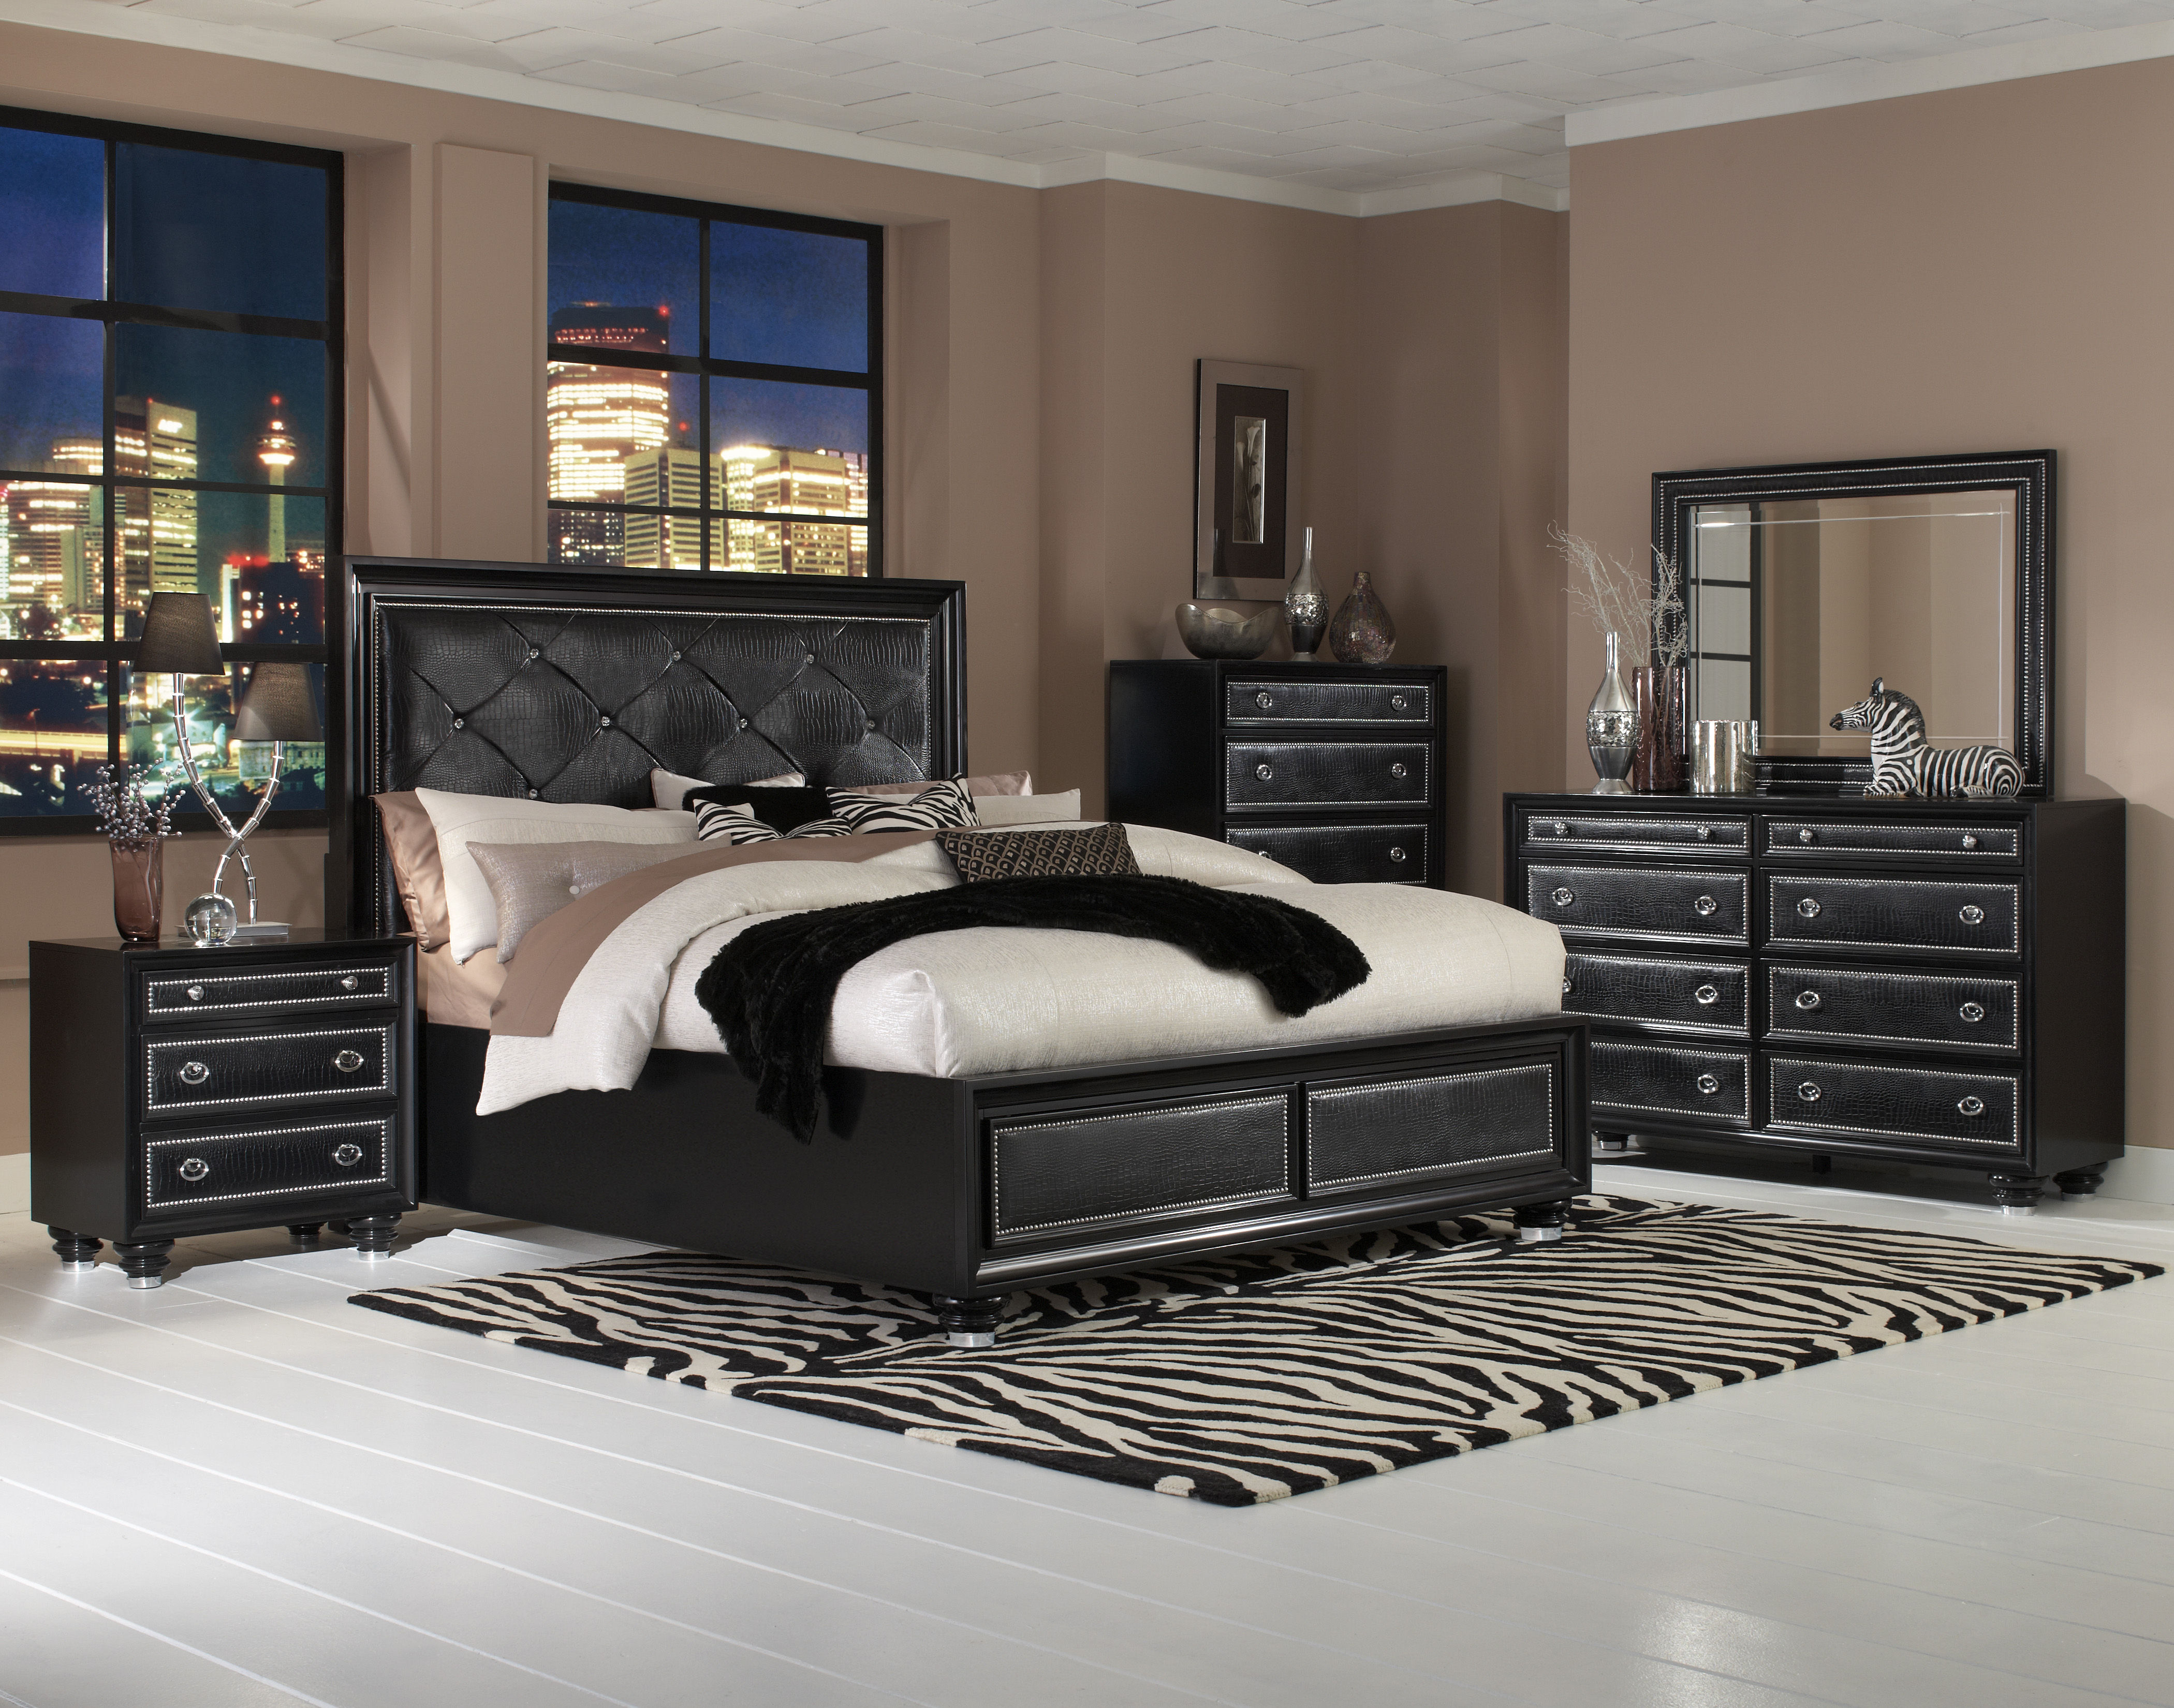 Onyx casual black wood pvc master bedroom set the classy - Black and wood bedroom furniture ...